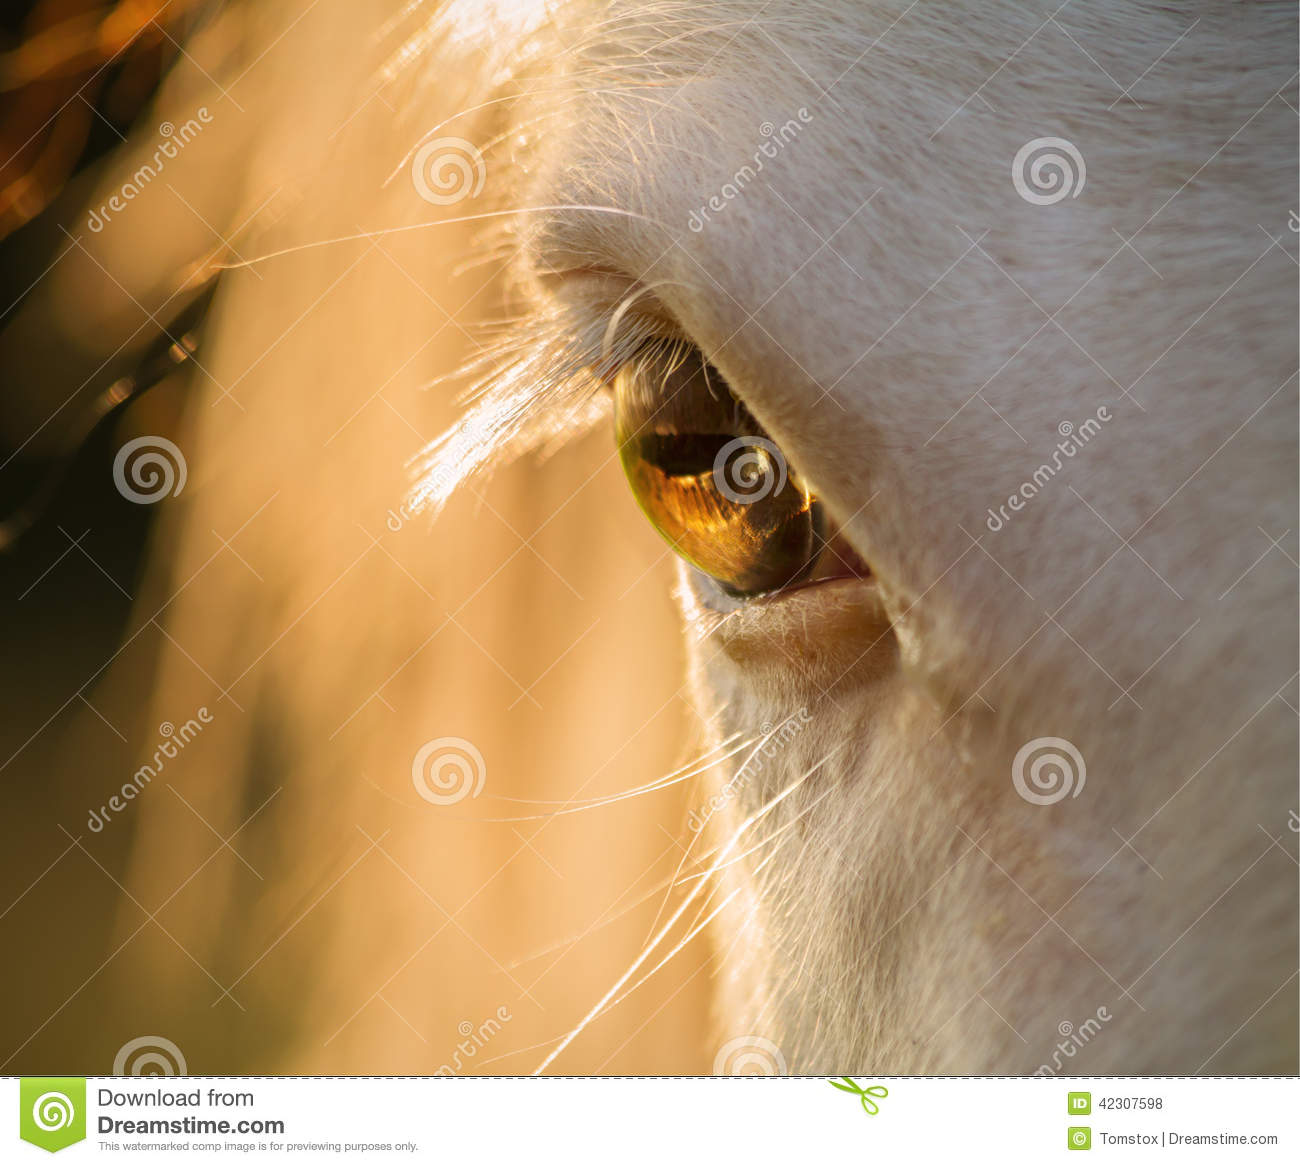 Download Horse Eye Close-up At Sunset Stock Photo - Image of equine, head: 42307598